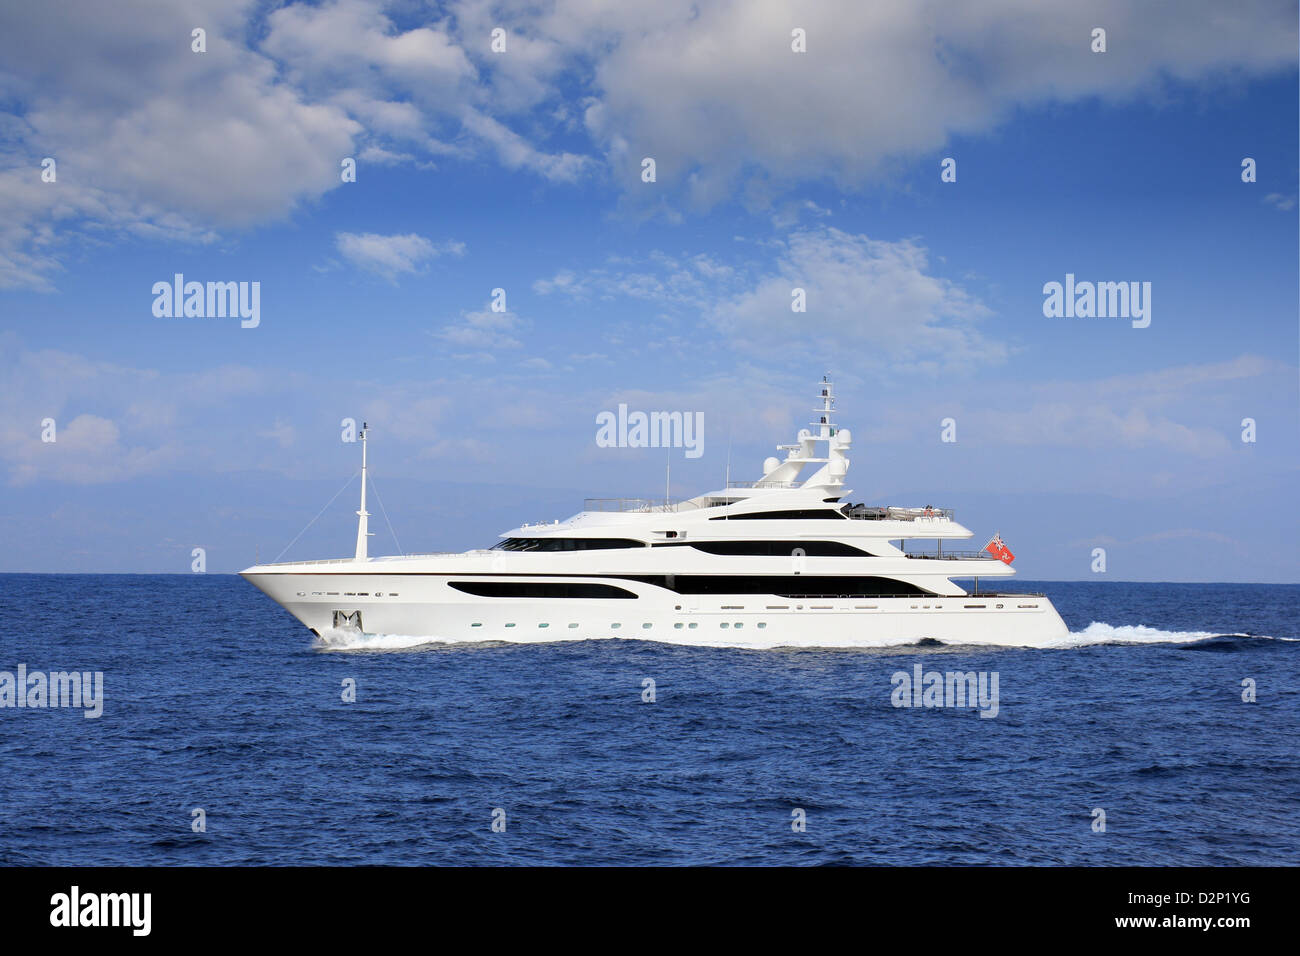 Private yacht sailing in open waters - Stock Image